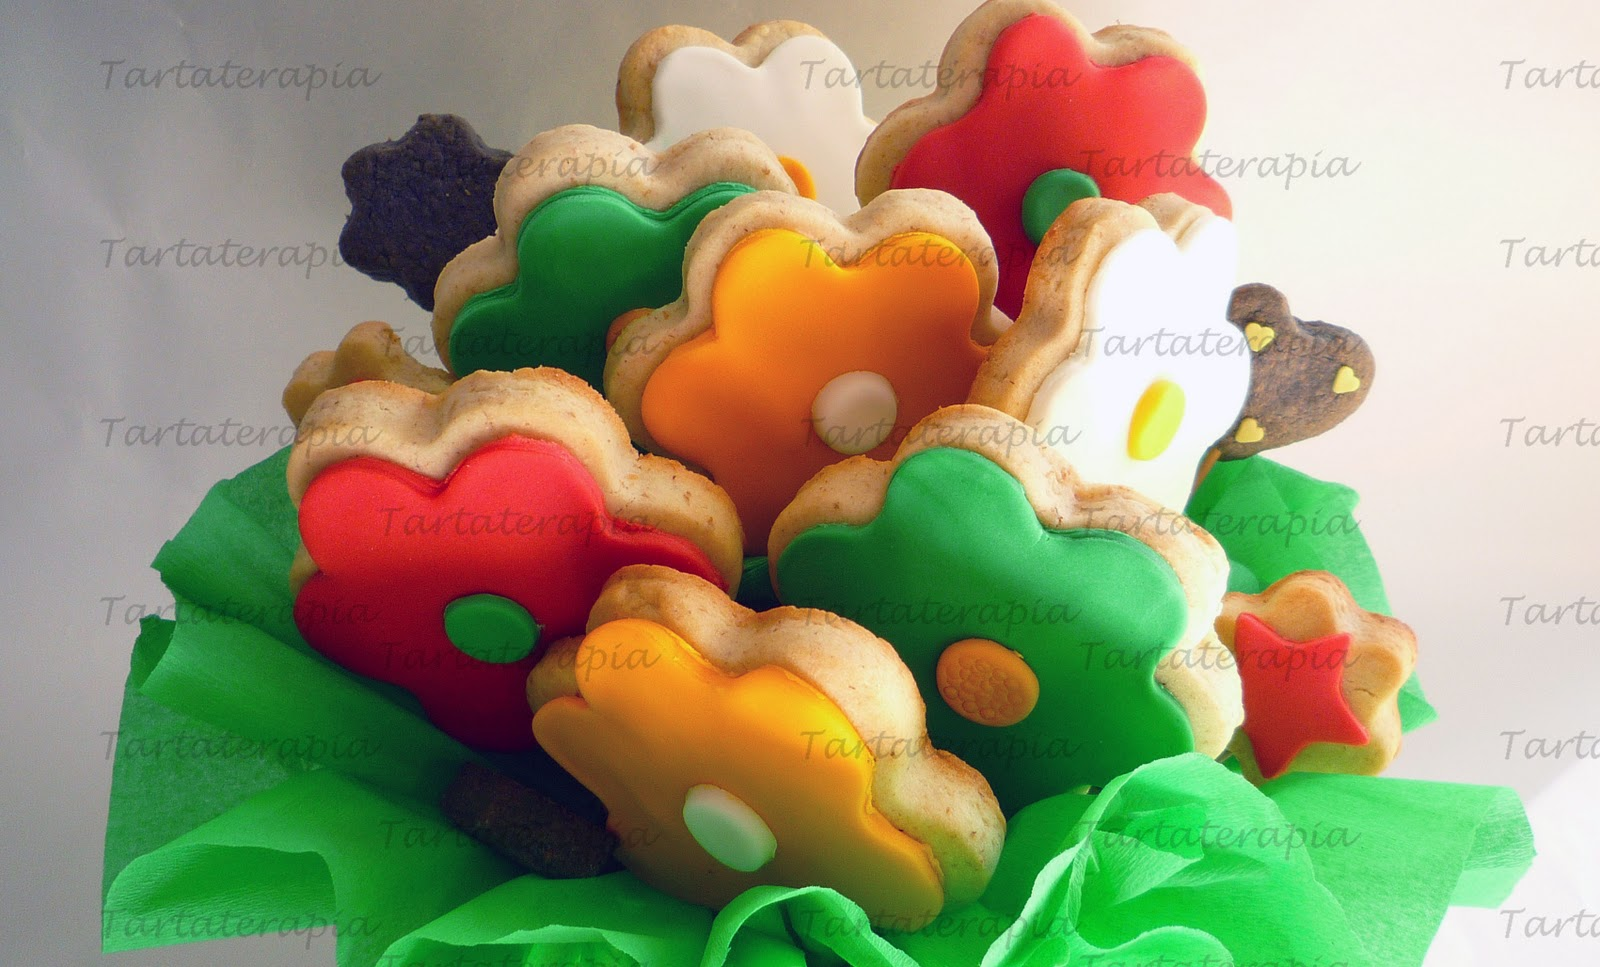 TARTATERAPIA: Galletas